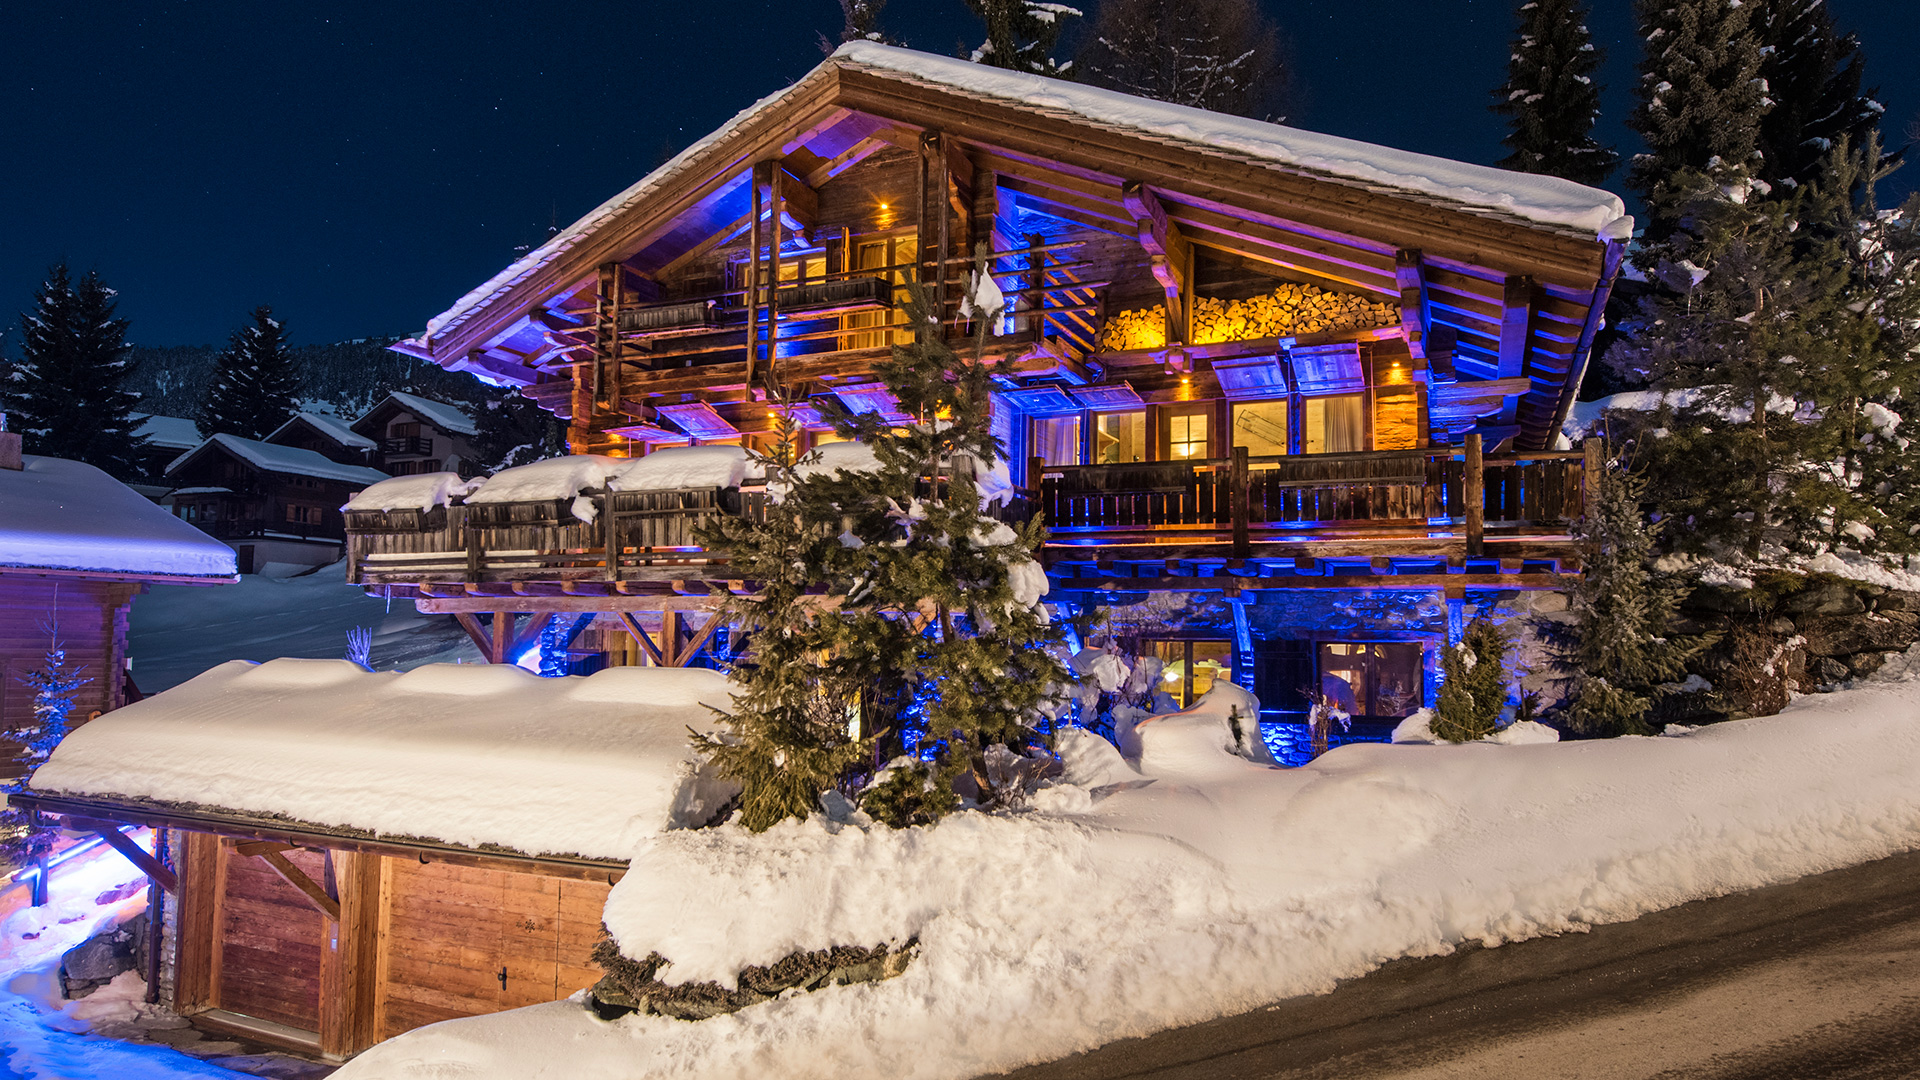 Chalet Flocons Chalet, Switzerland